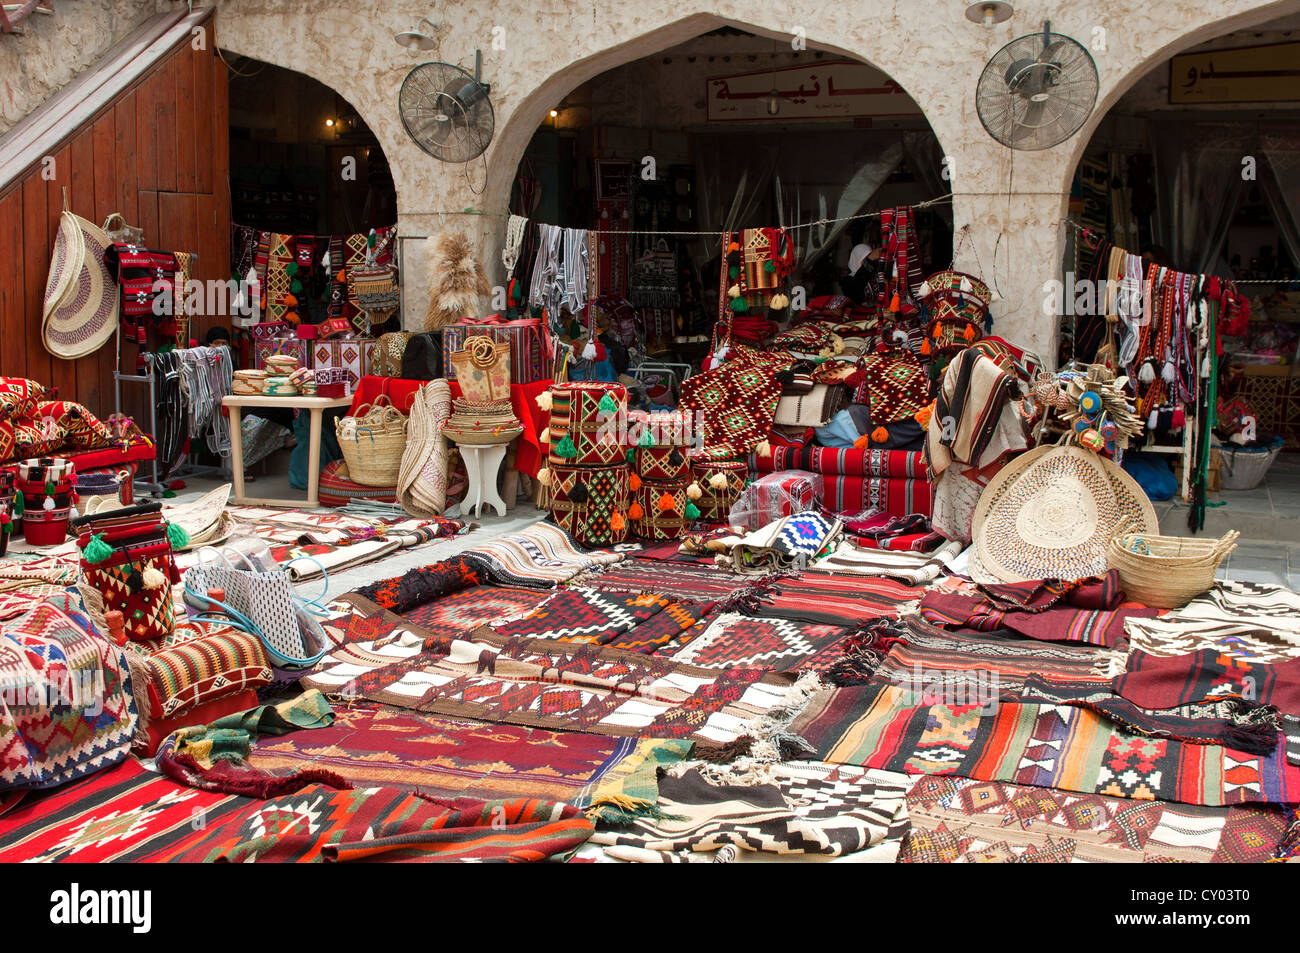 Market stall for carpets and cushions in the souk of Doha, Qatar, Middle East - Stock Image